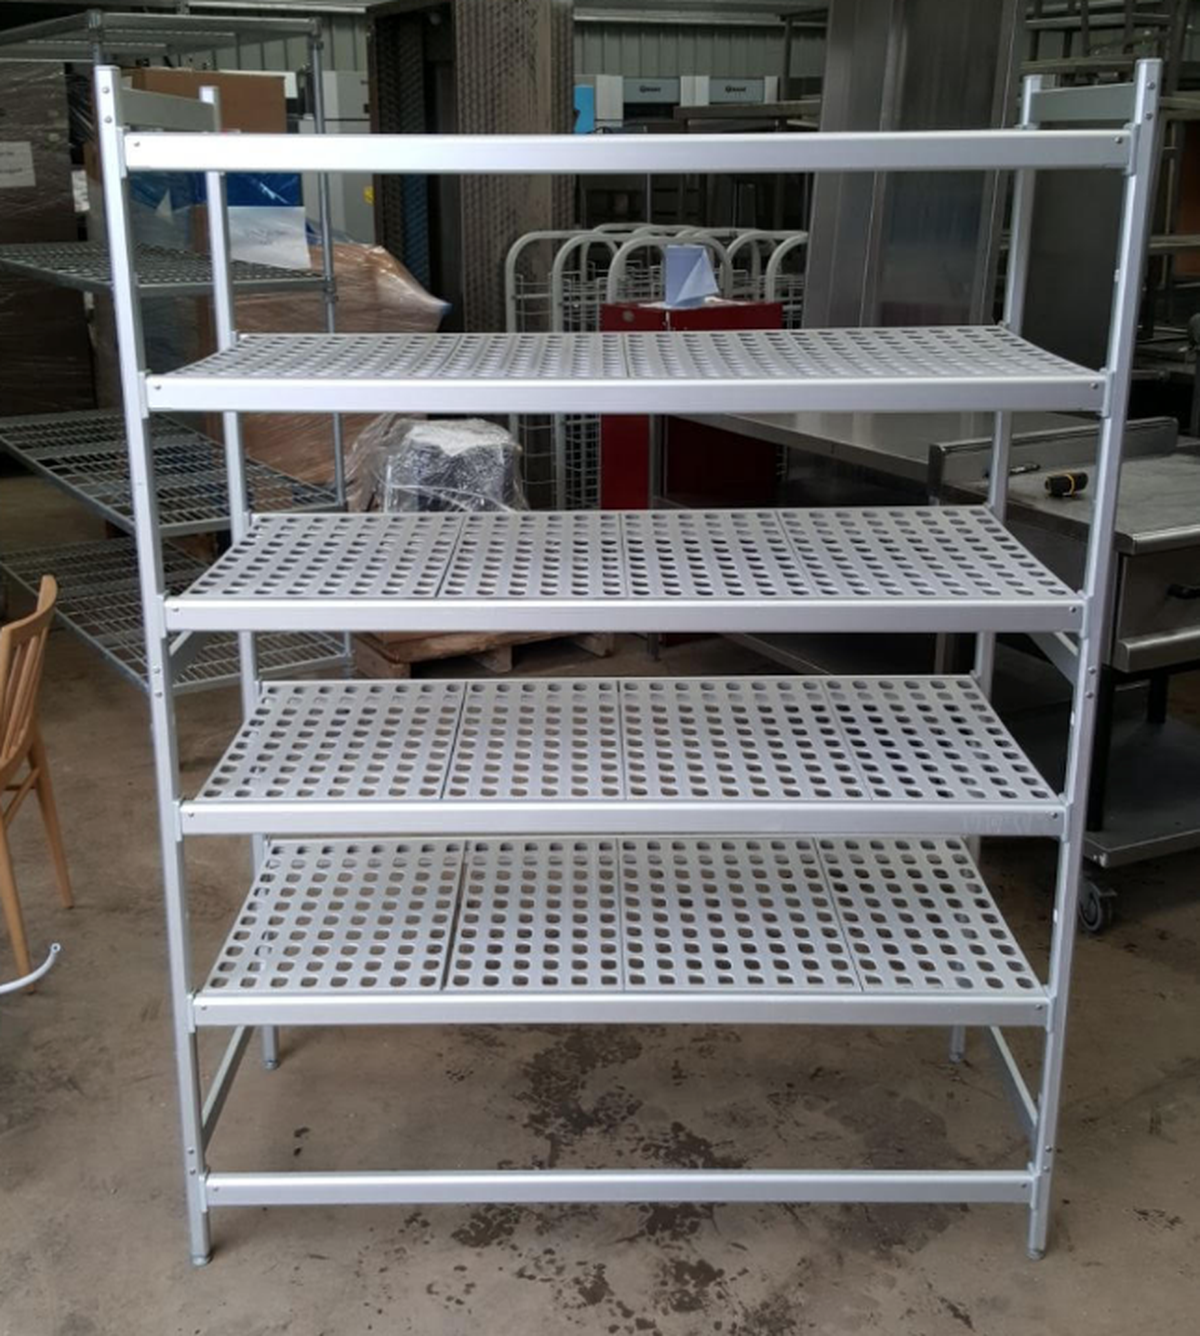 Cold room shelving ... & Secondhand Catering Equipment | Shelves and Storage Racks | Cold ...